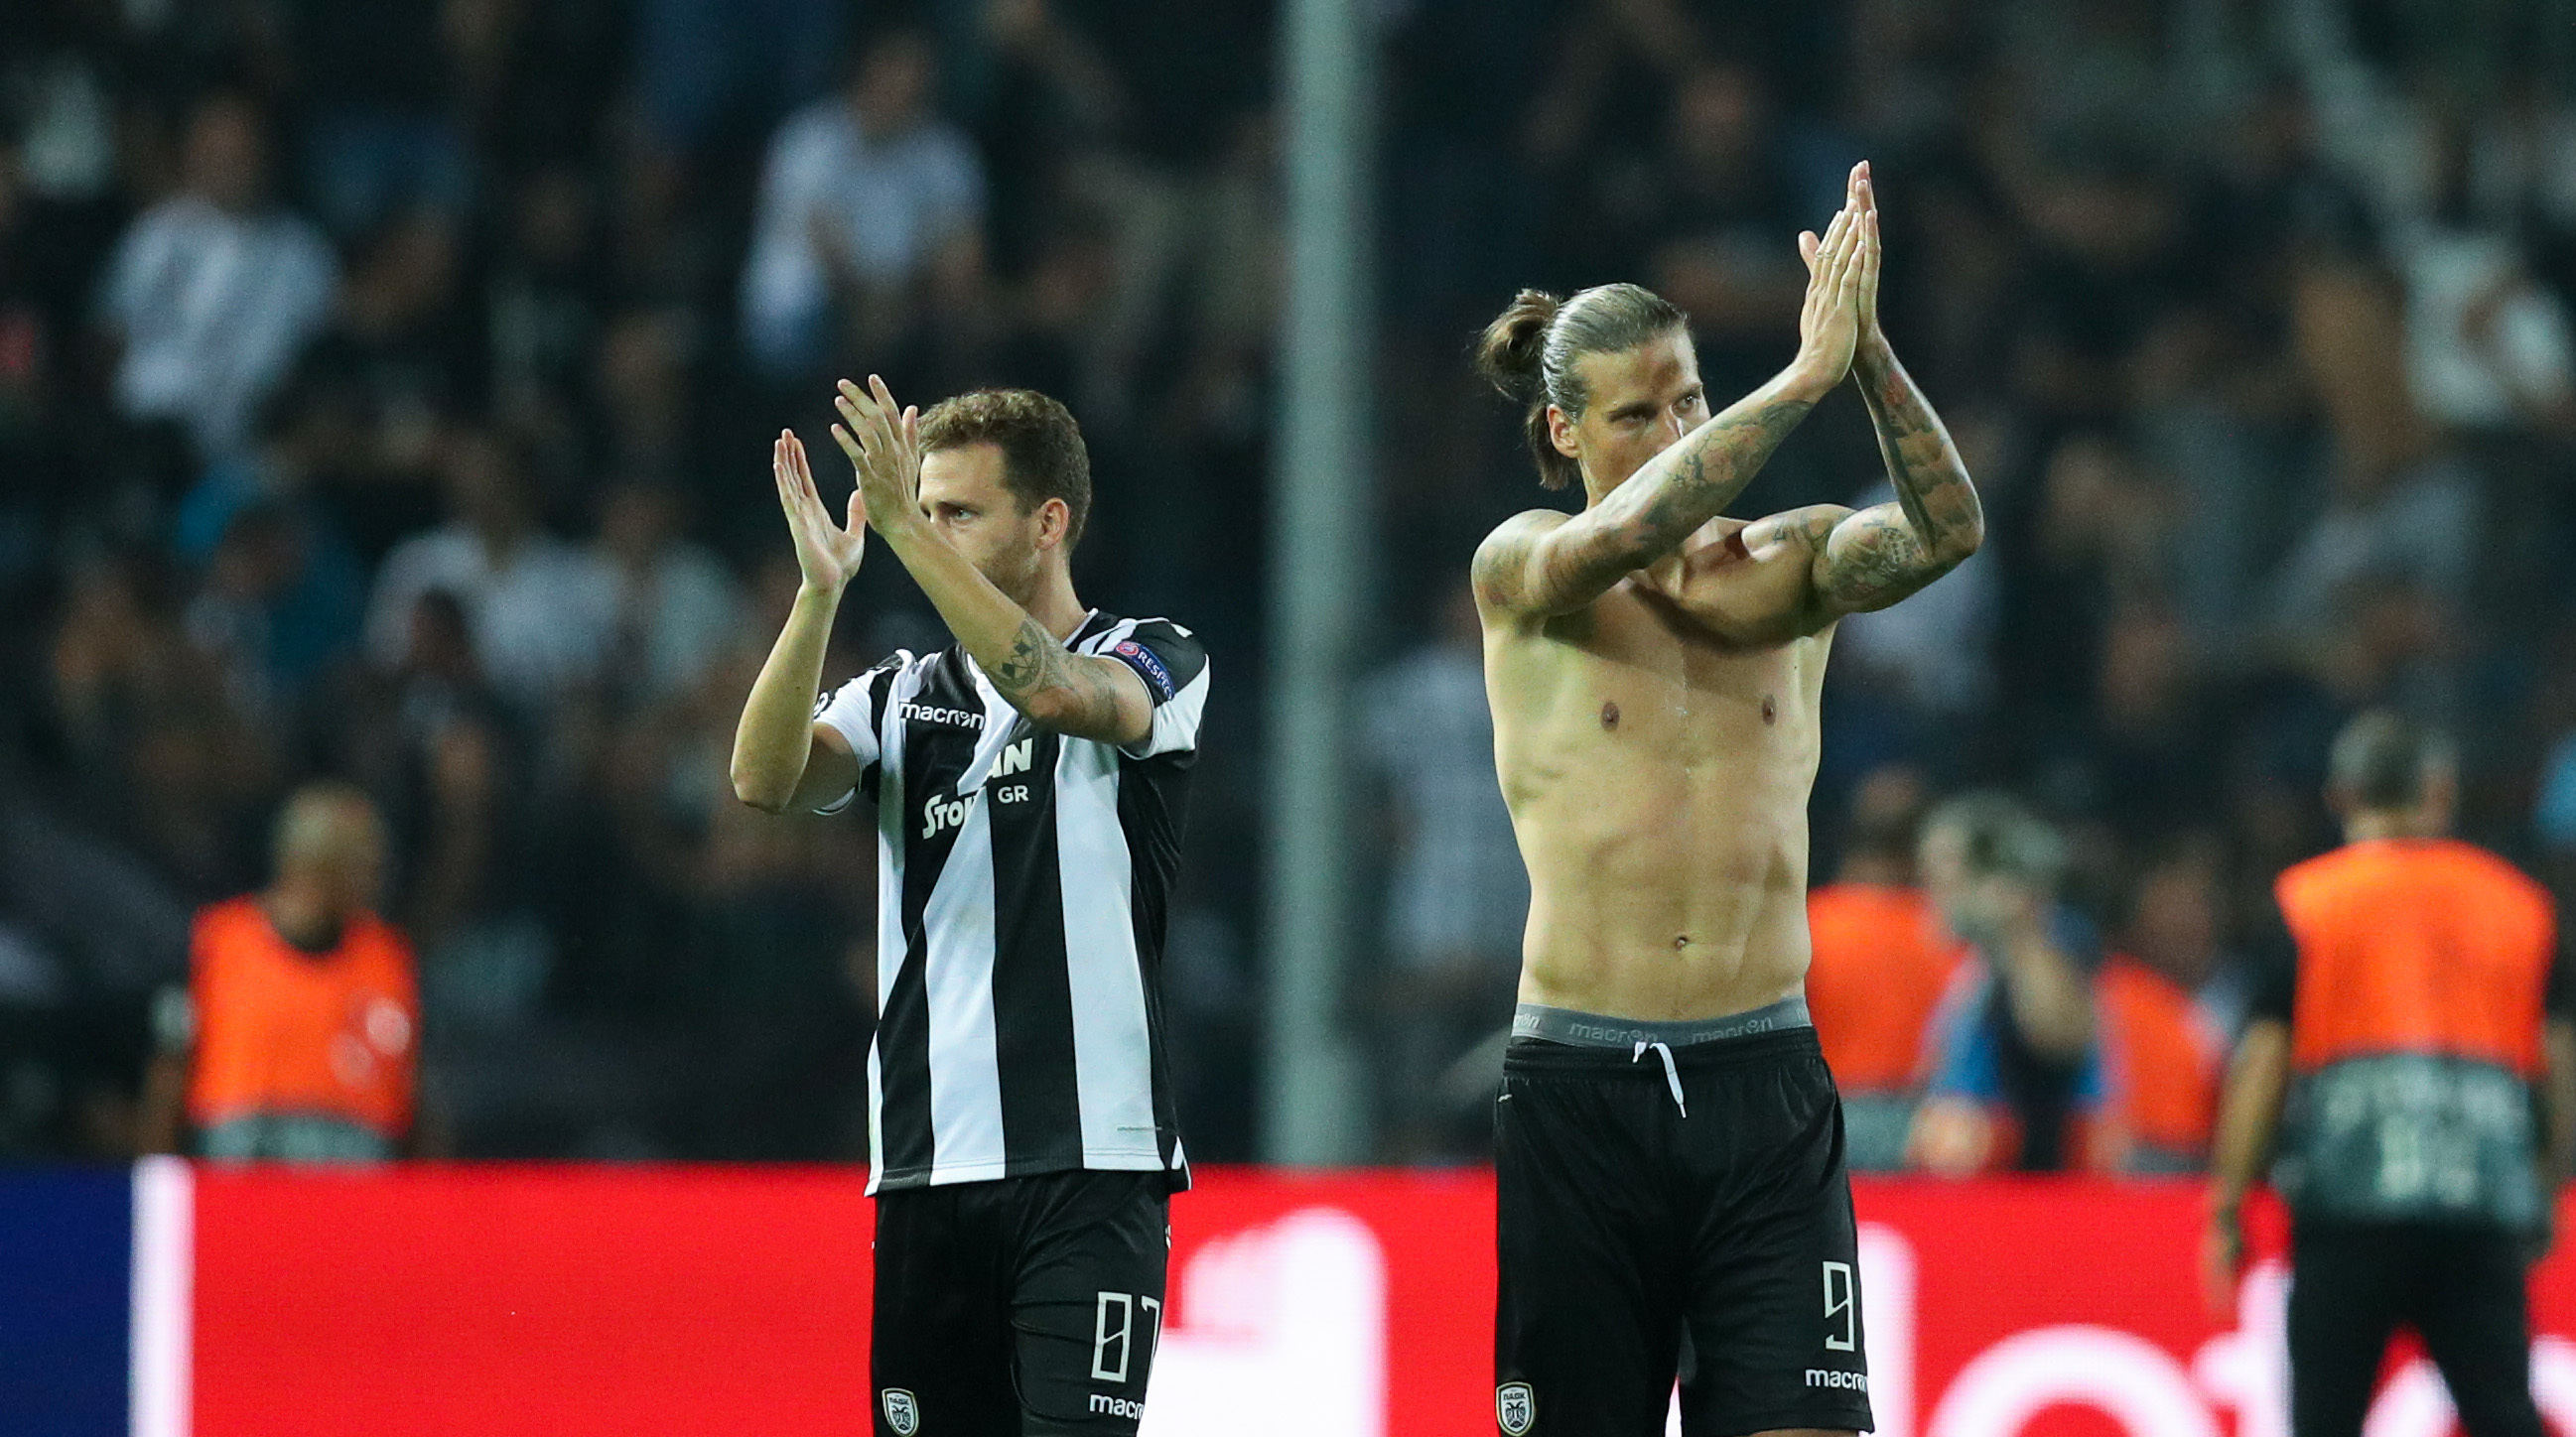 PAOK – SL Benfica: Backstage camera